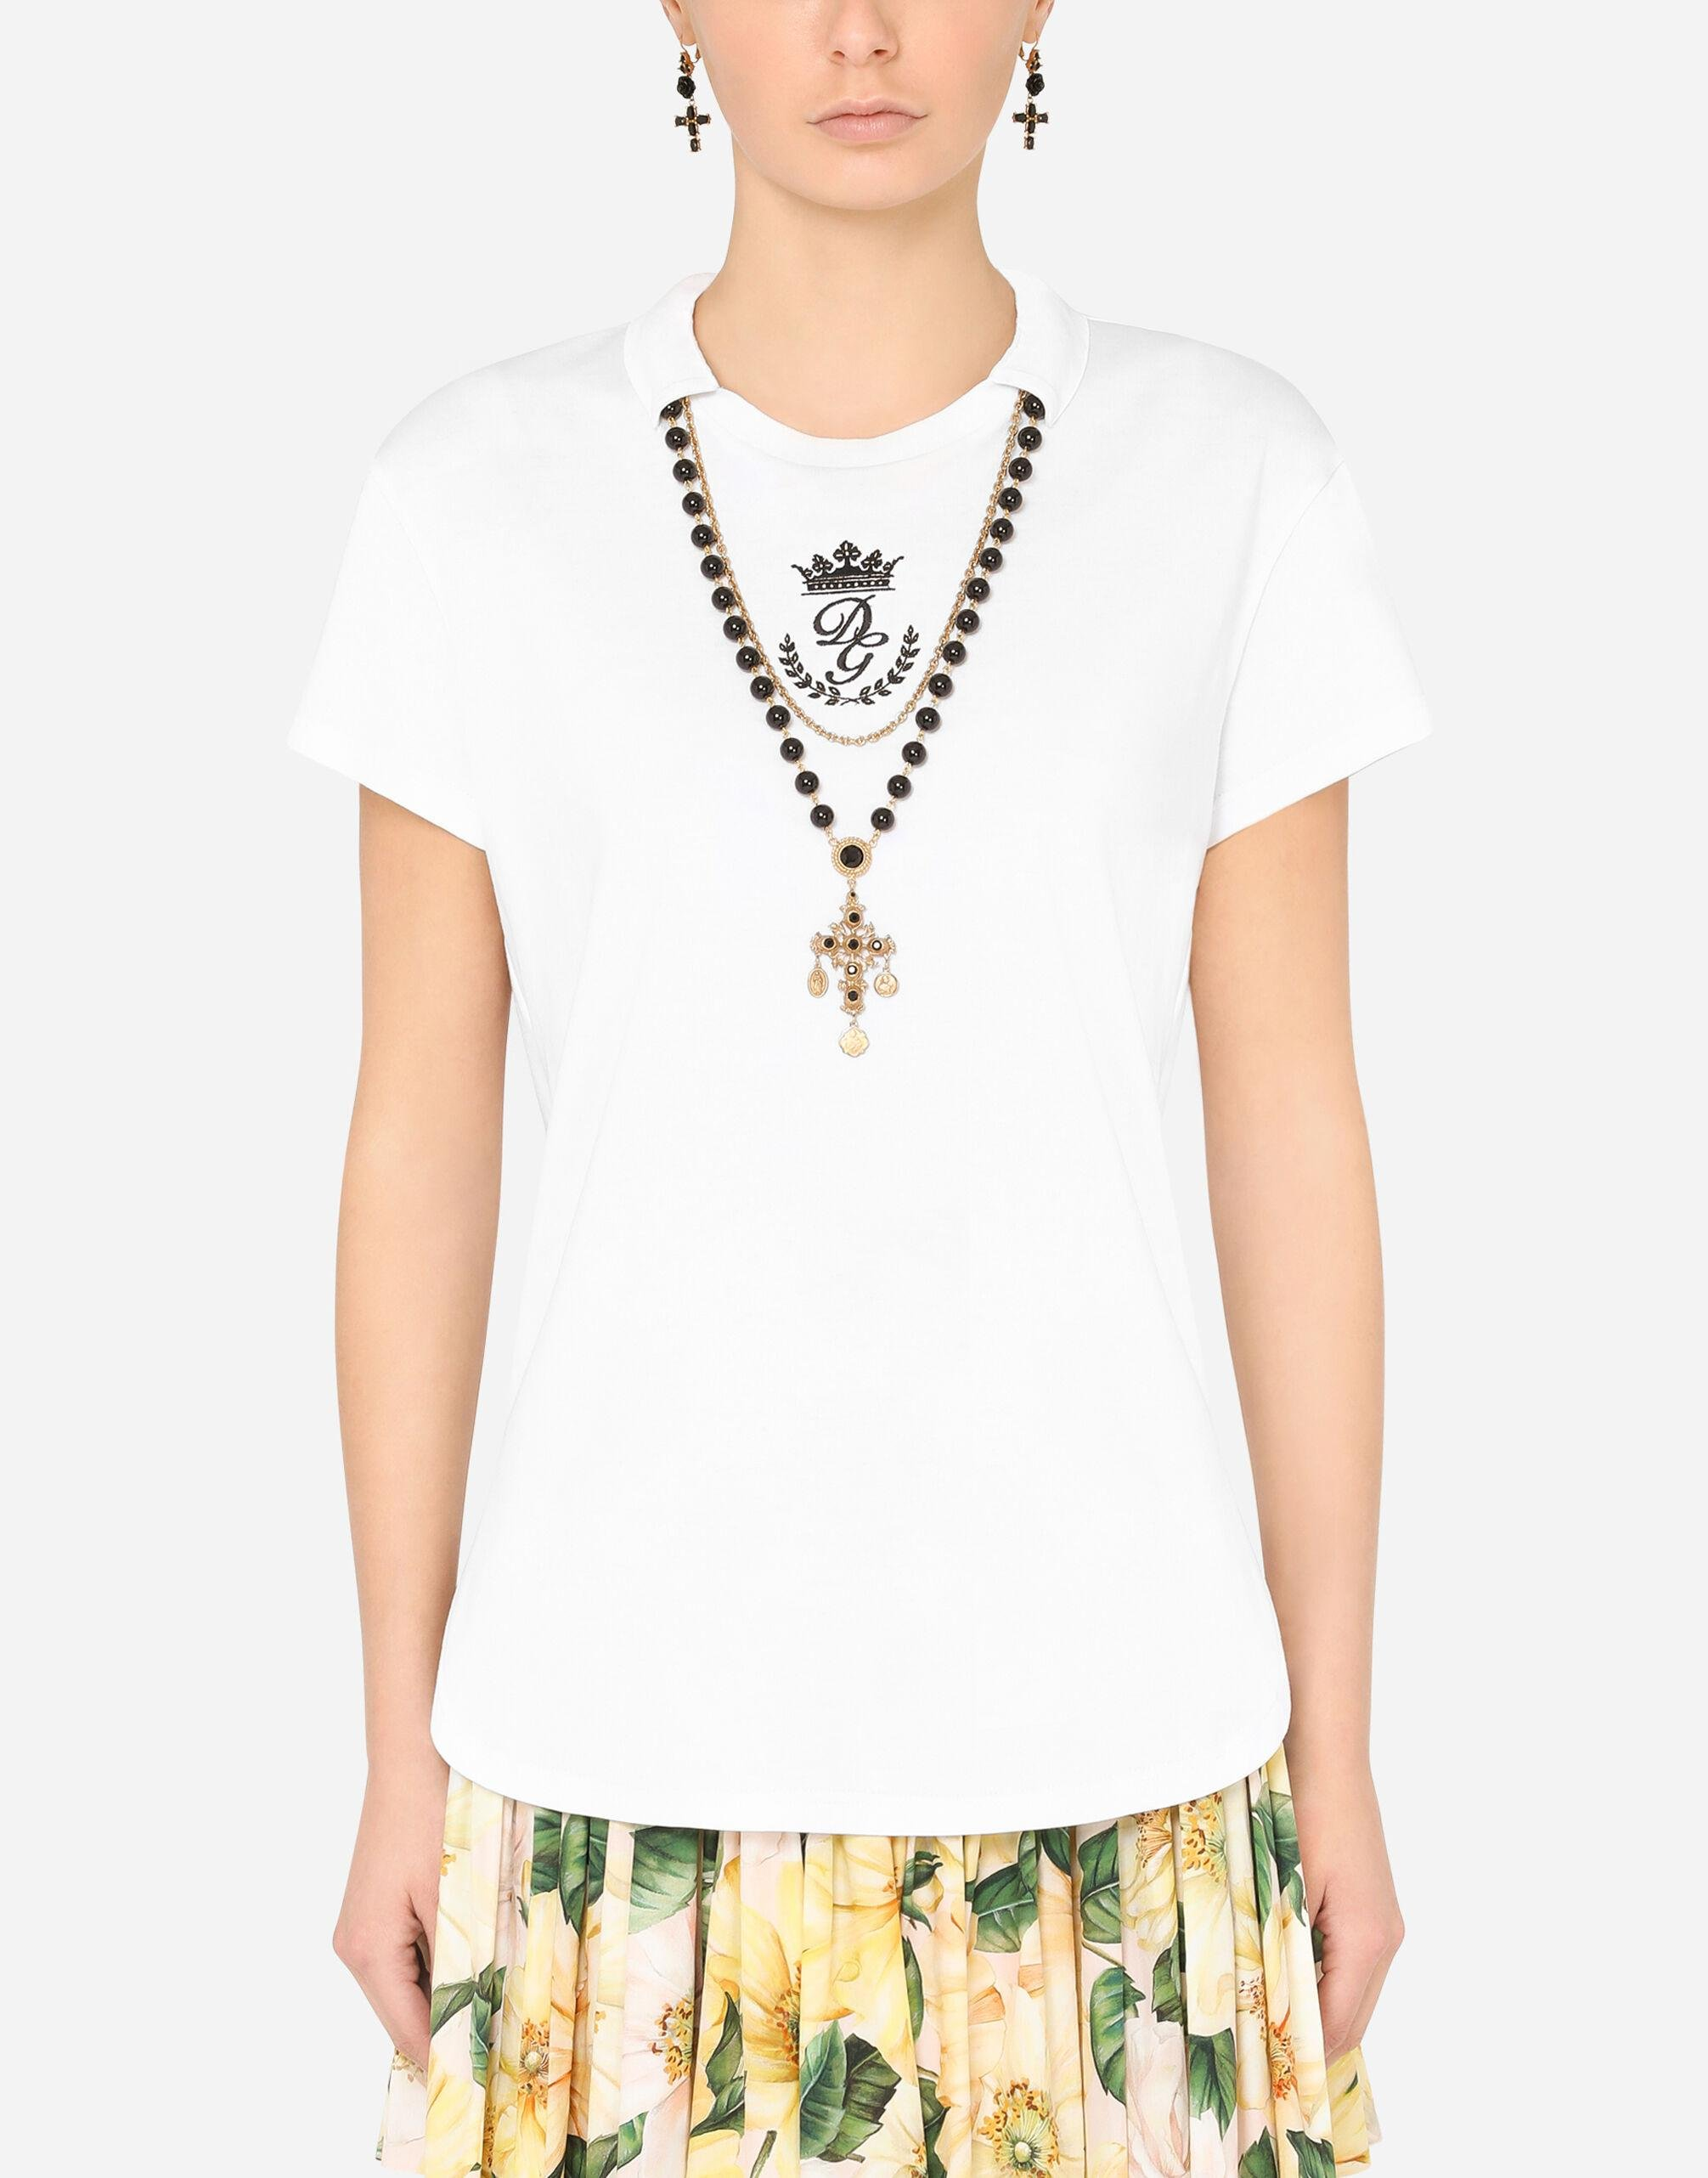 Round-neck jersey t-shirt with necklace